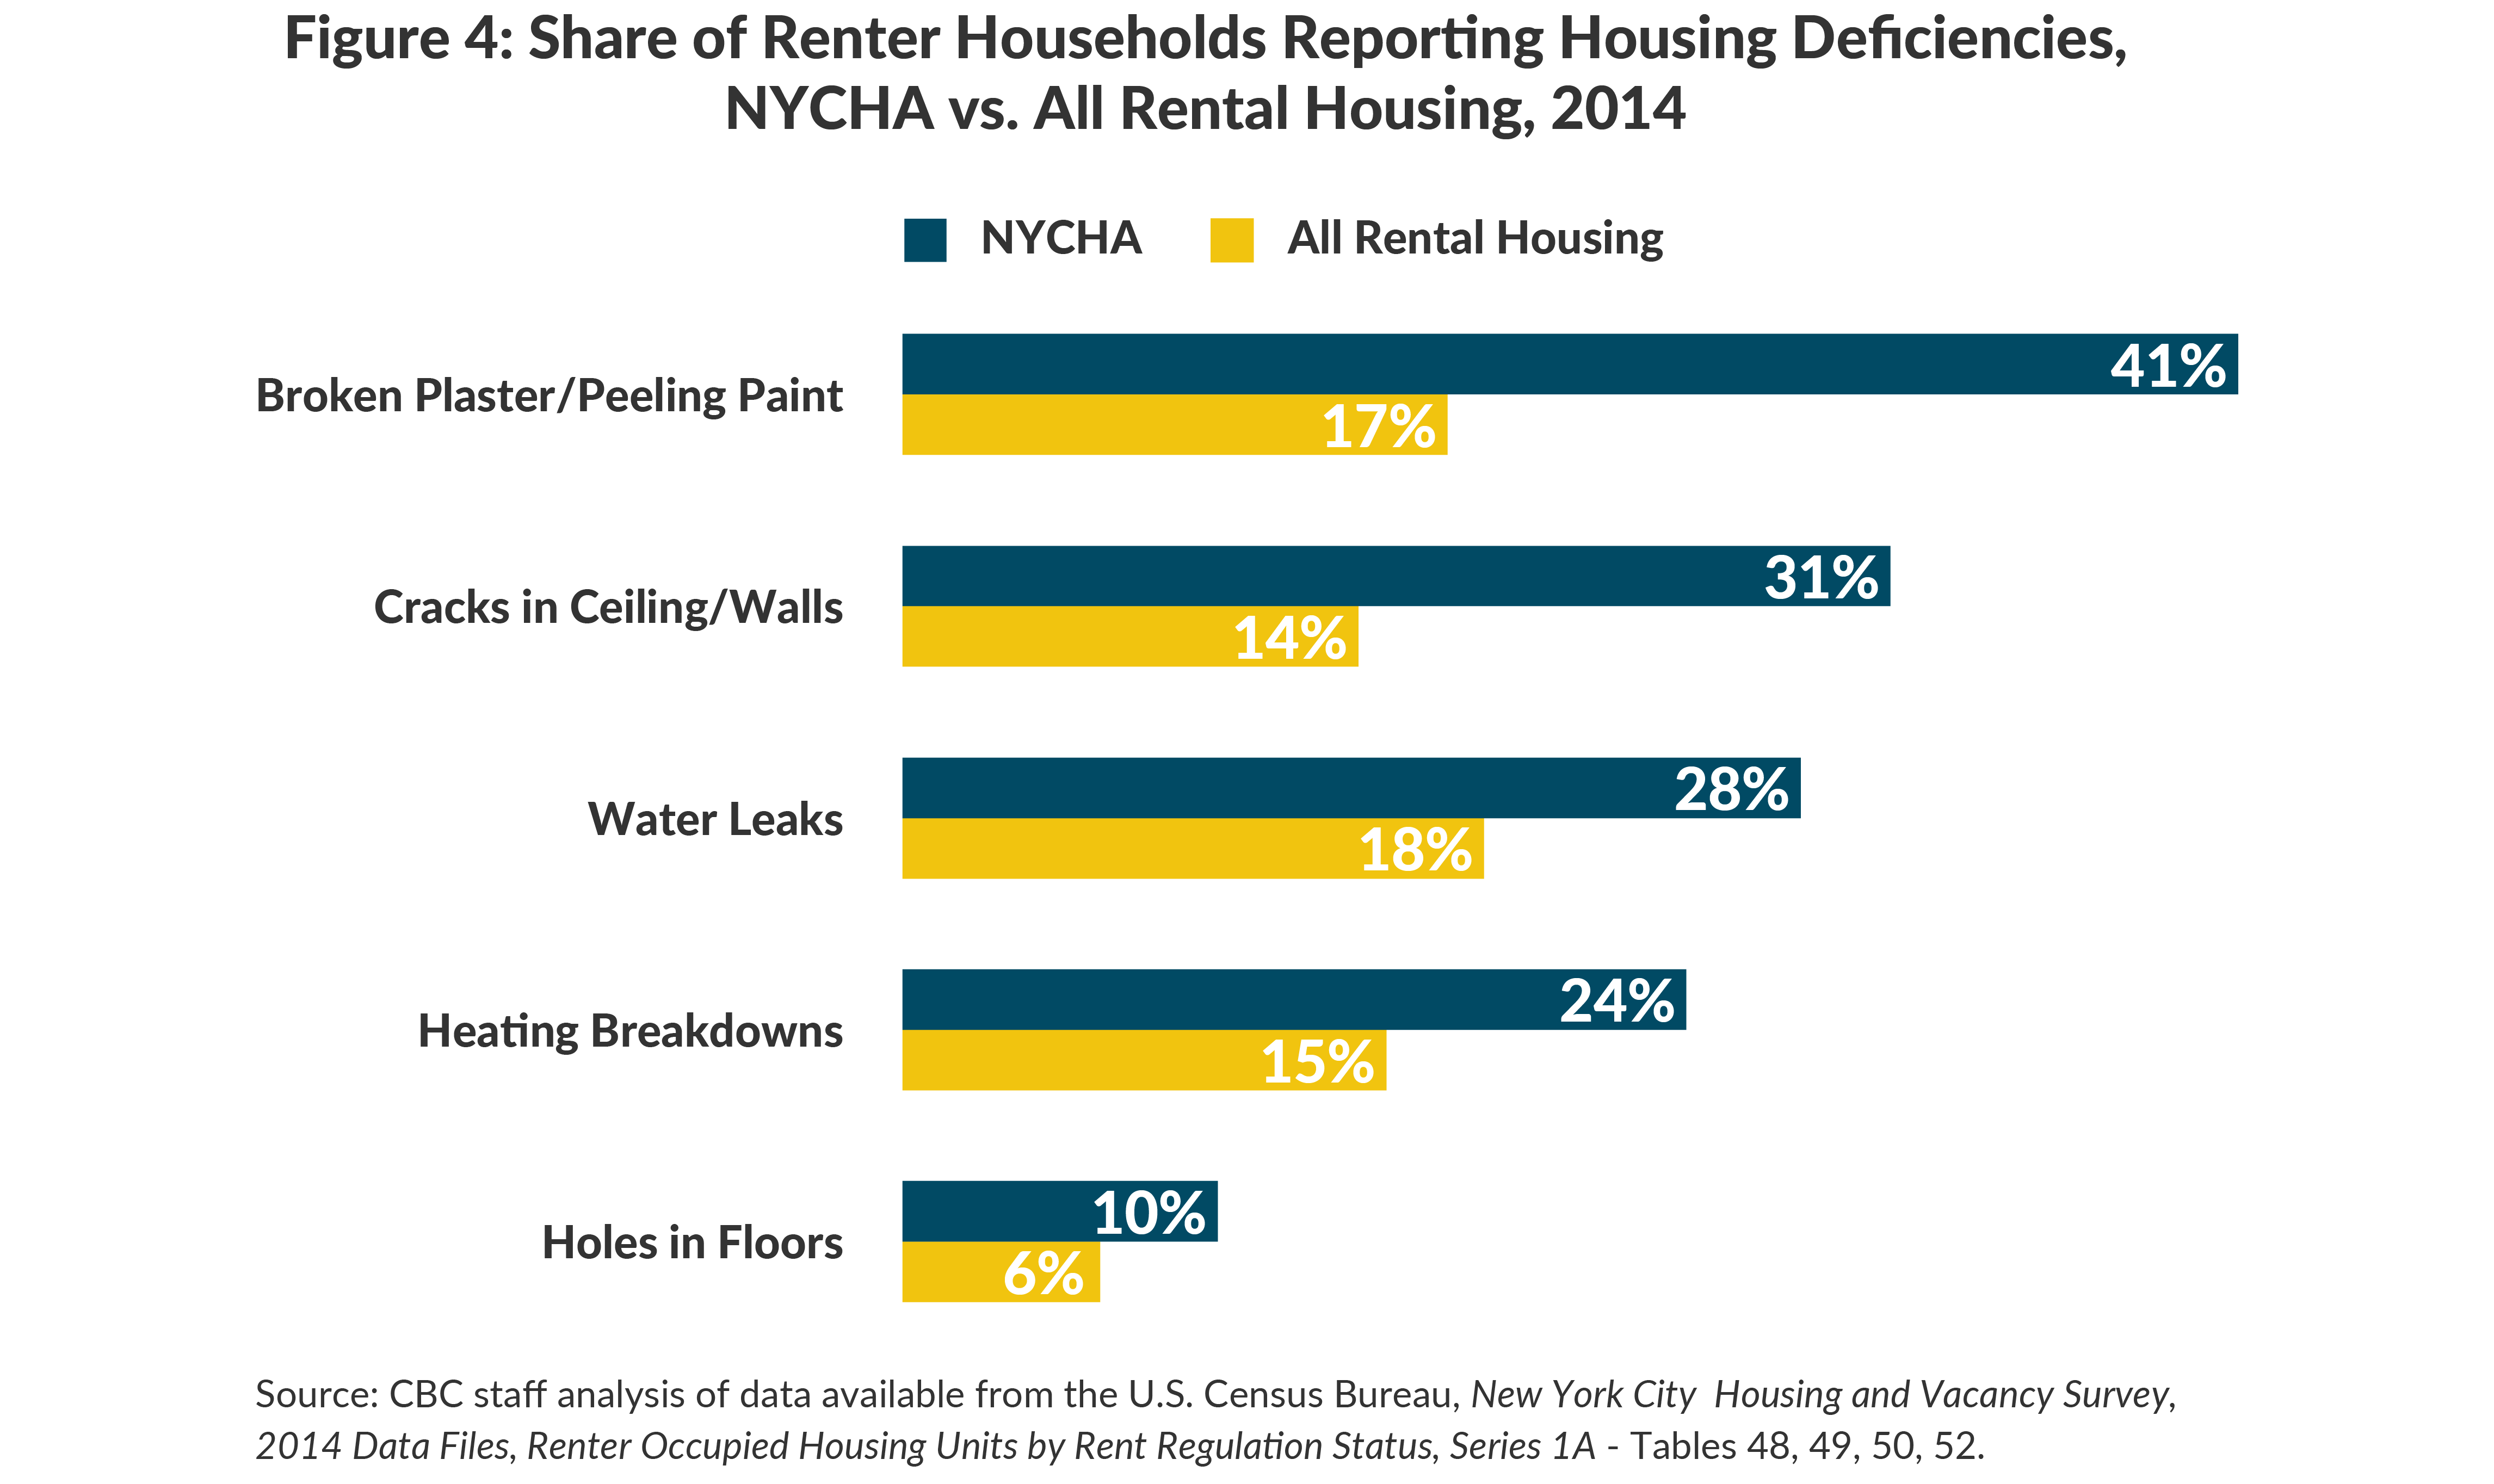 Figure 4: Share of Renter Households Reporting Housing Deficiencies, NYCHA vs. All Rental Housing, 2014